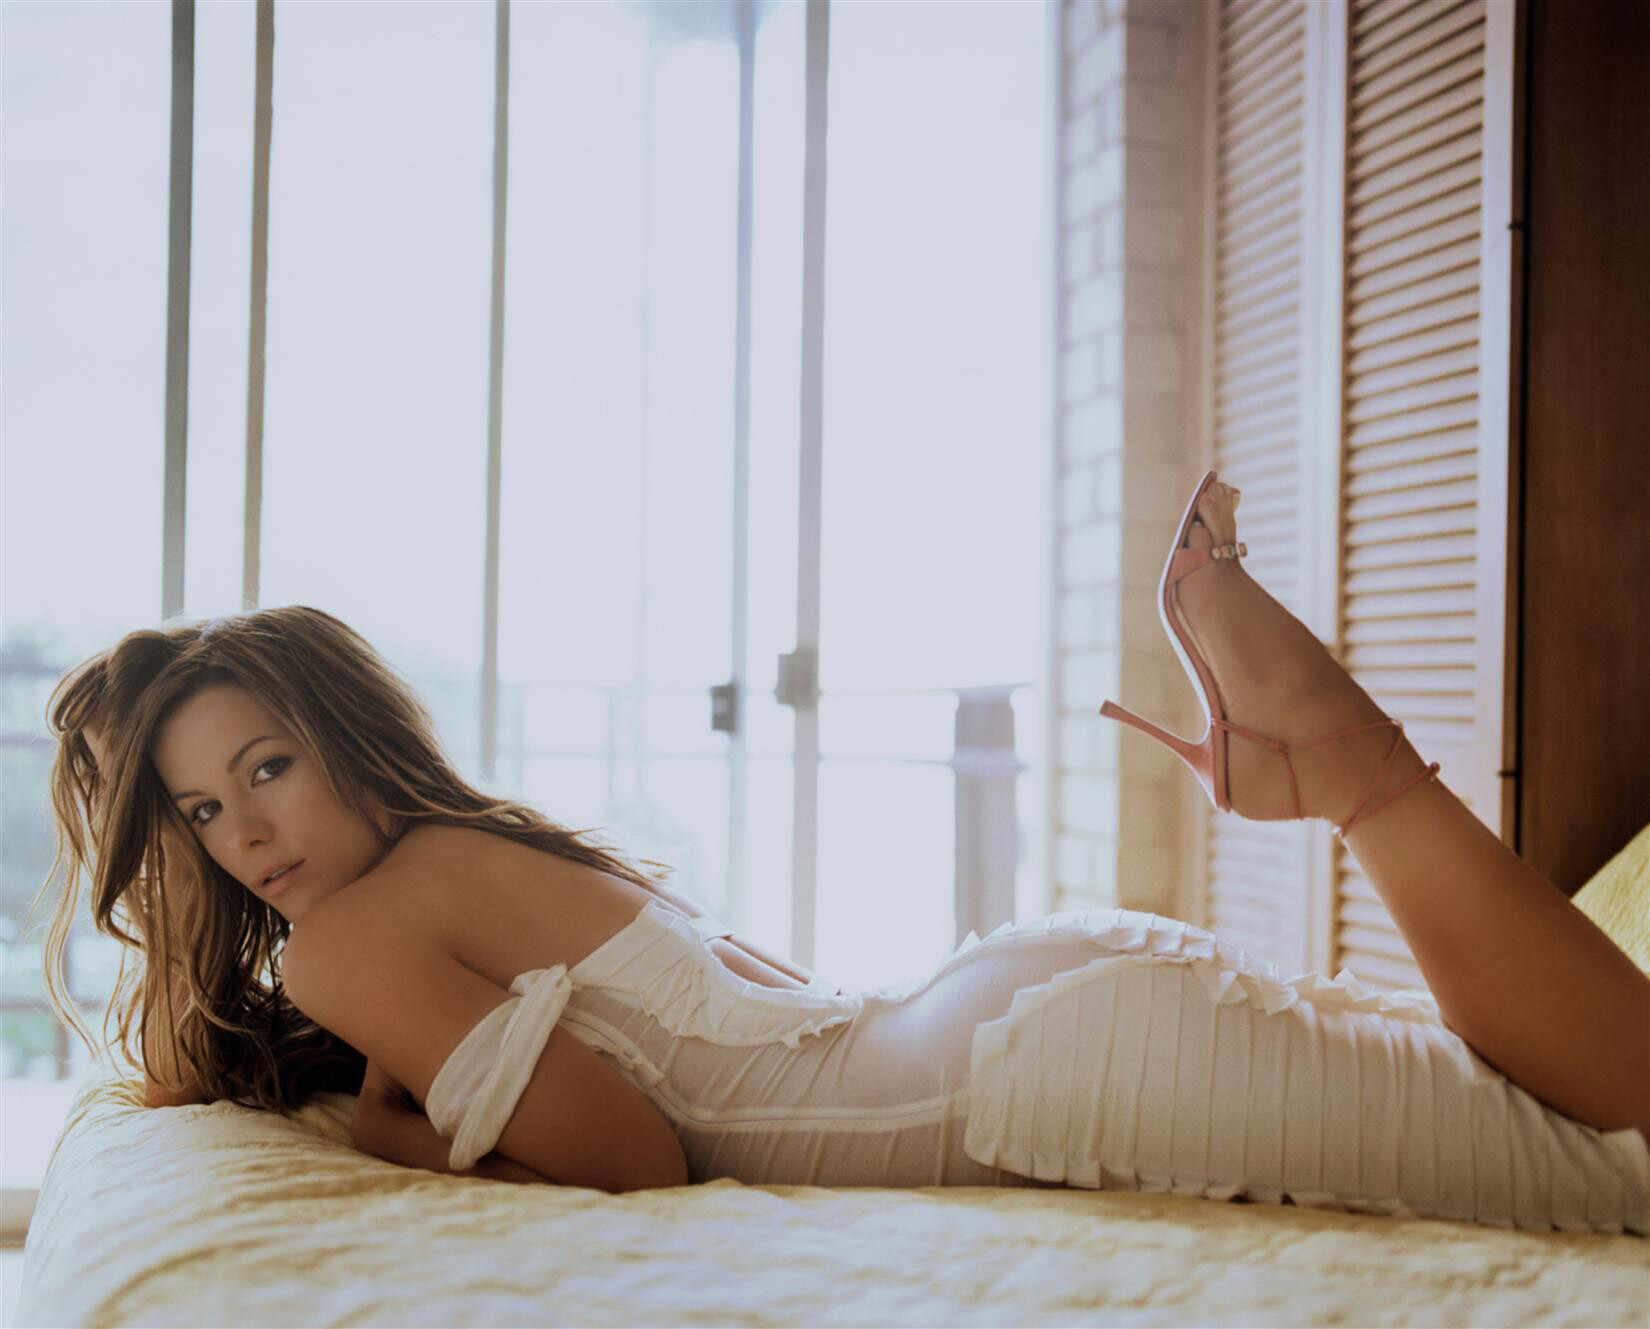 Kate Beckinsale Sexy fappenings.com 2